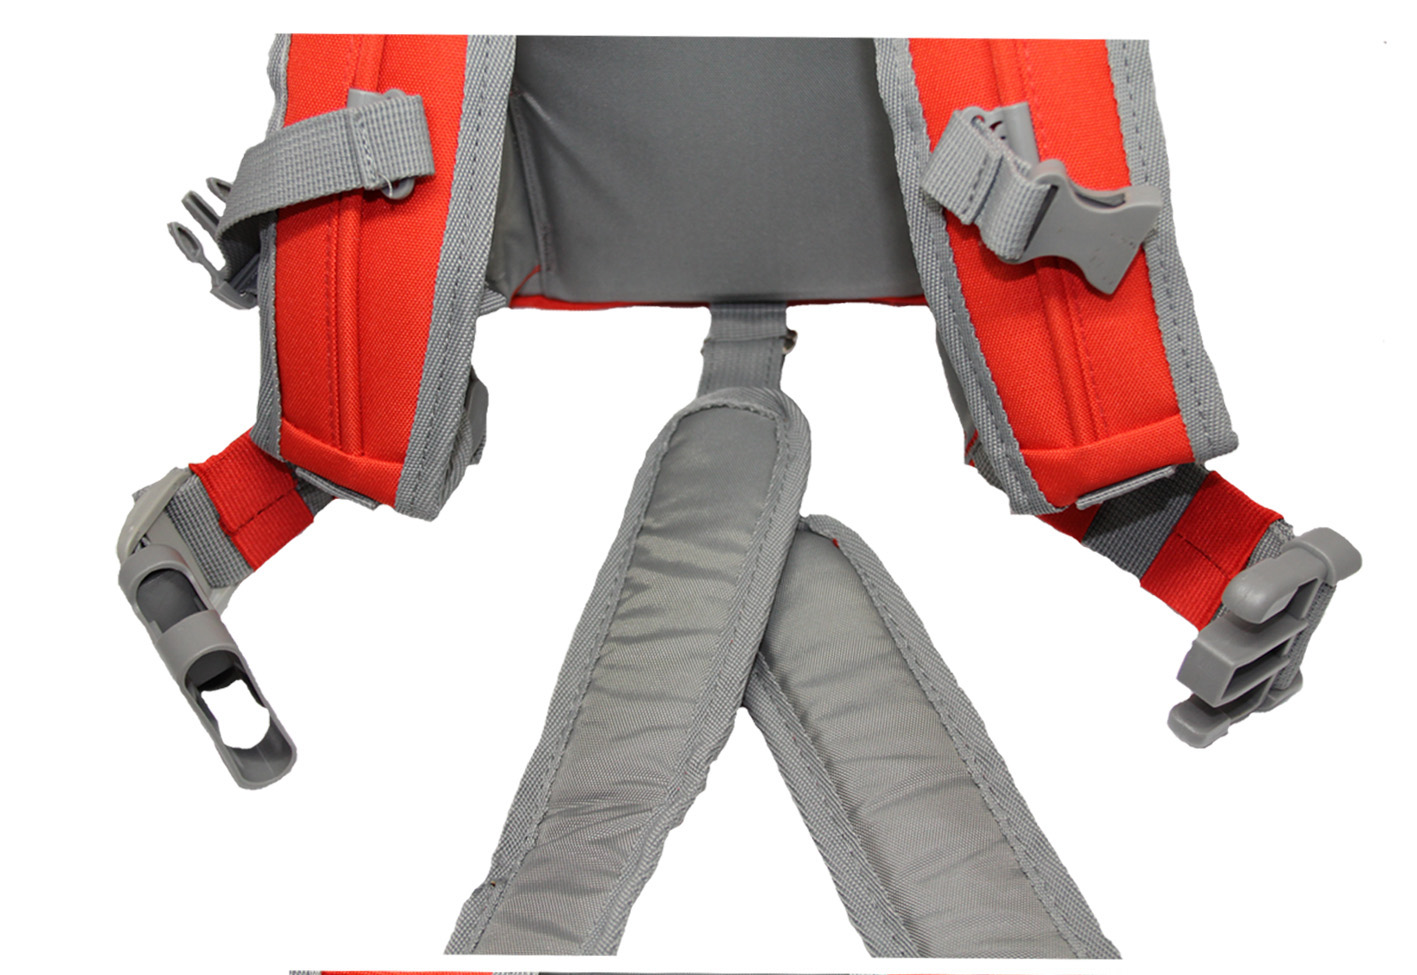 The back pack harness